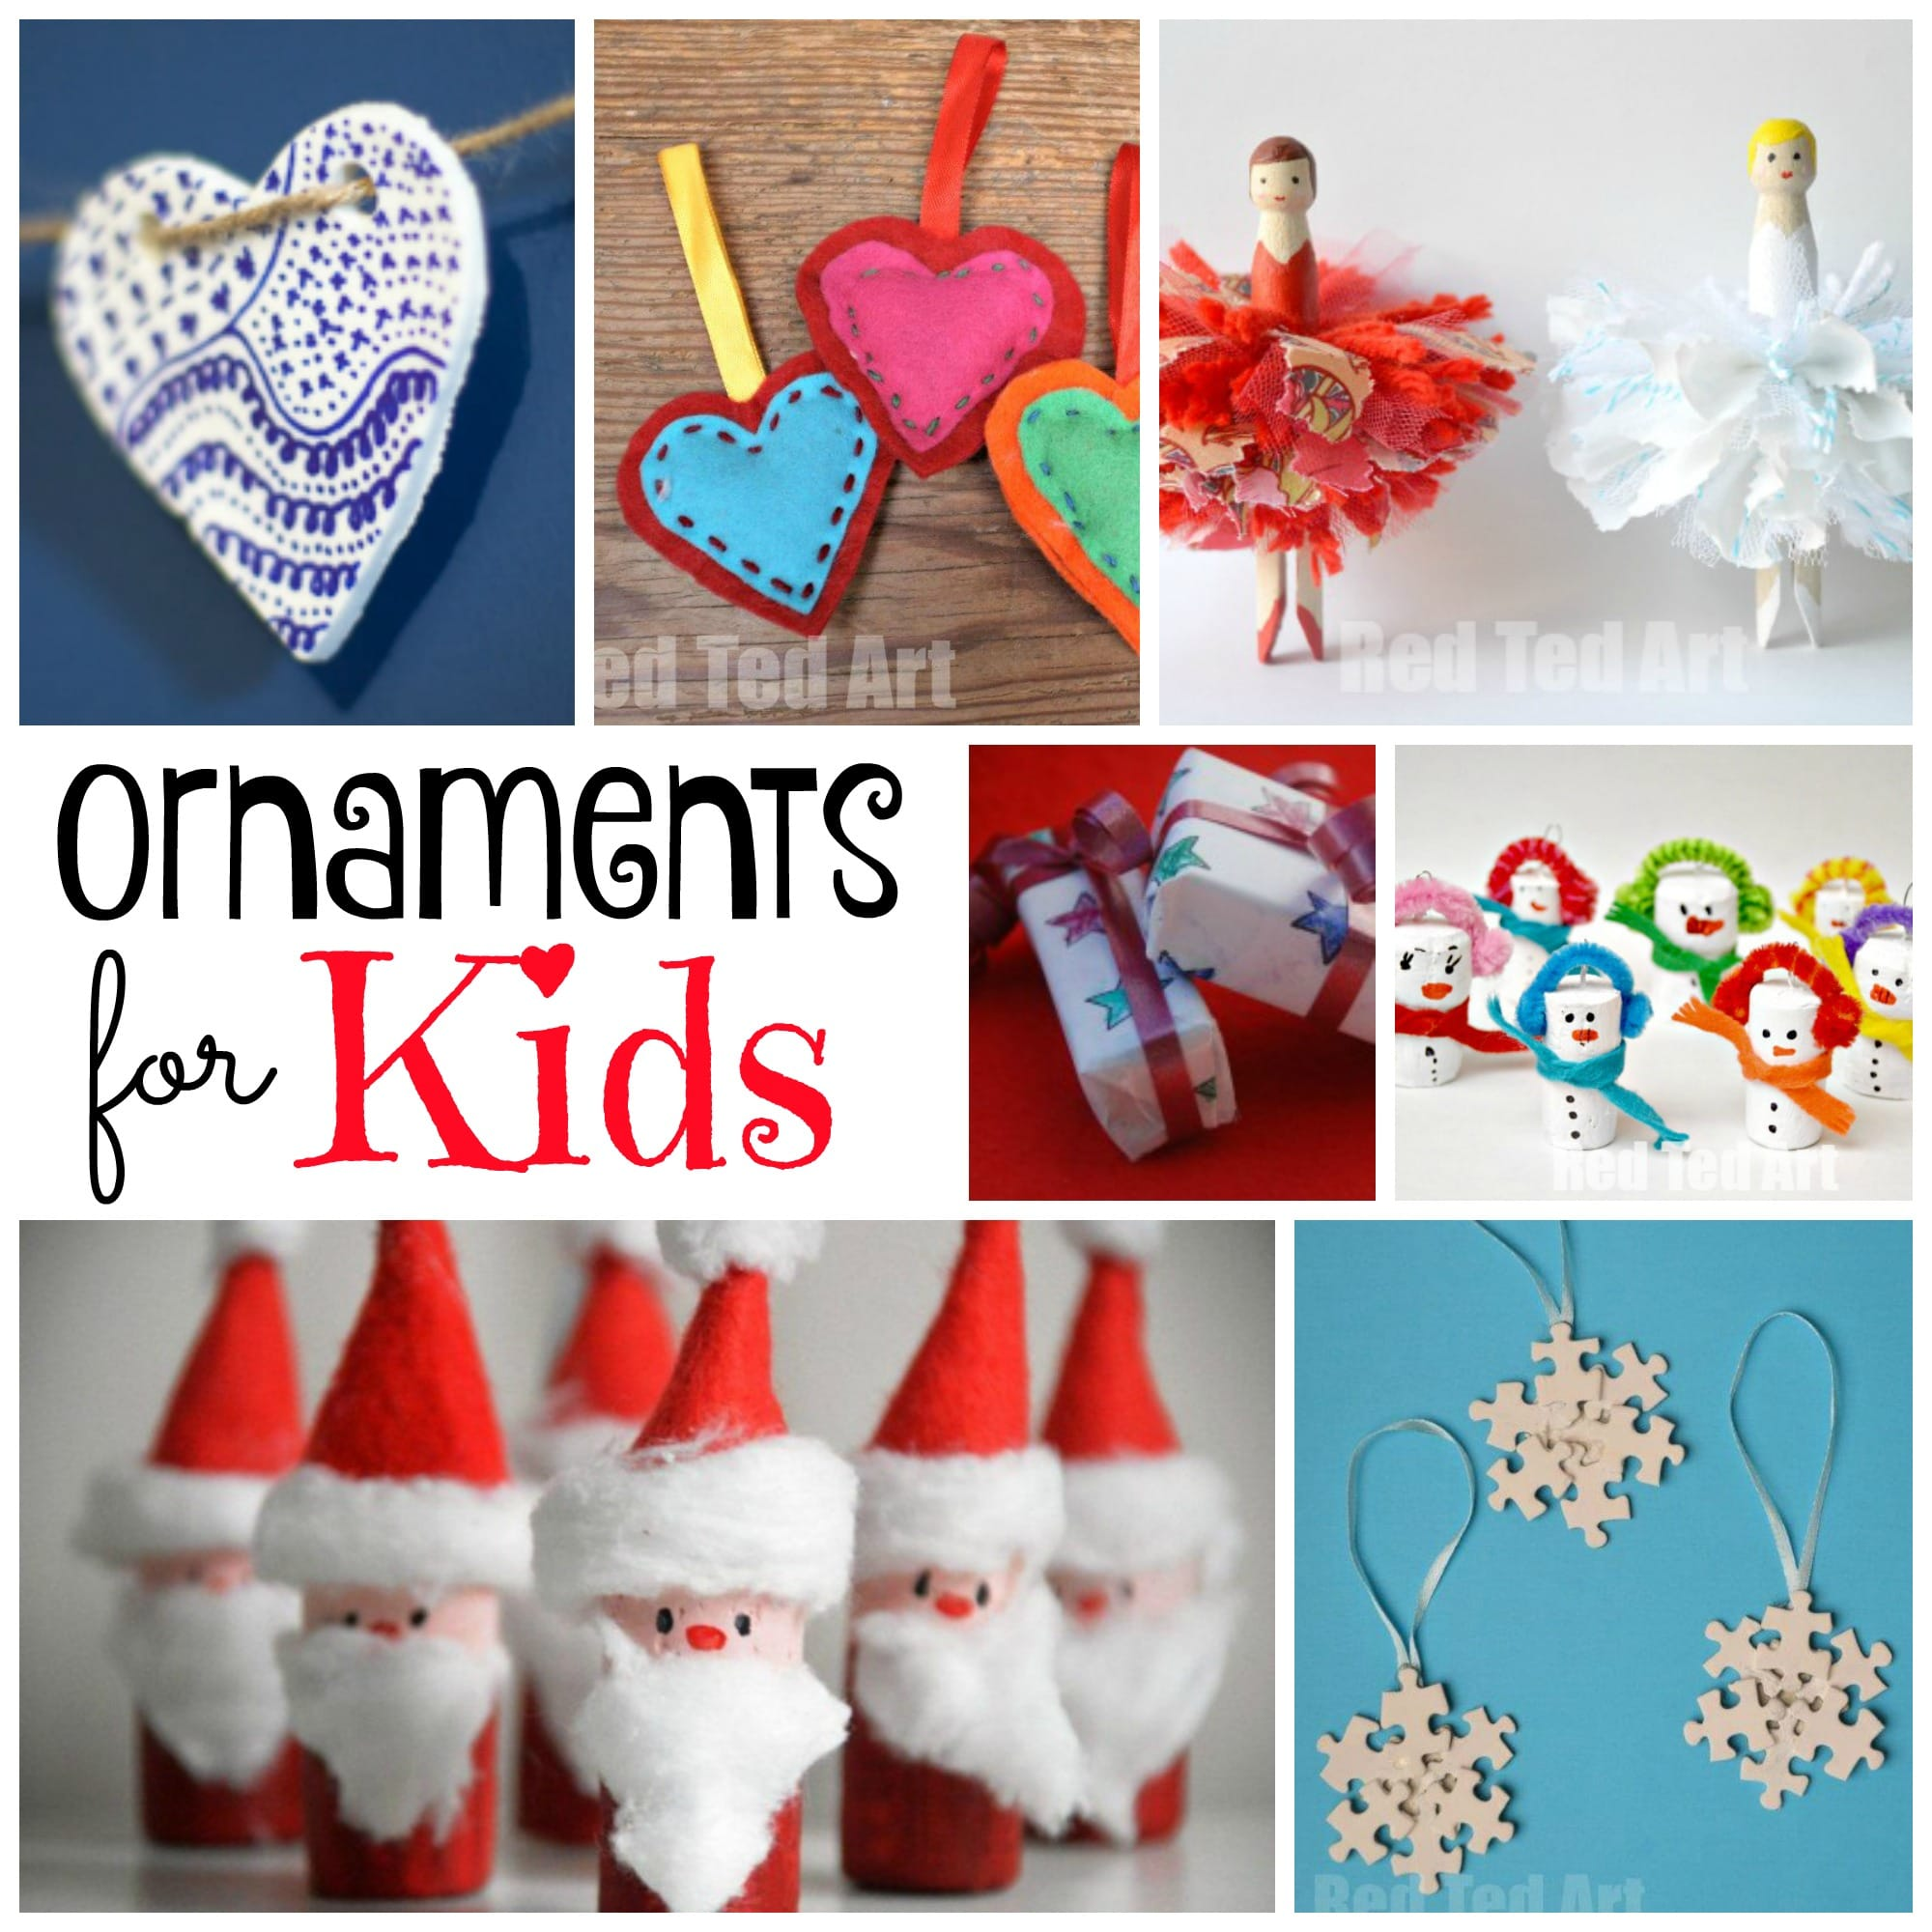 DIY Christmas Ornaments - Red Ted Art's Blog